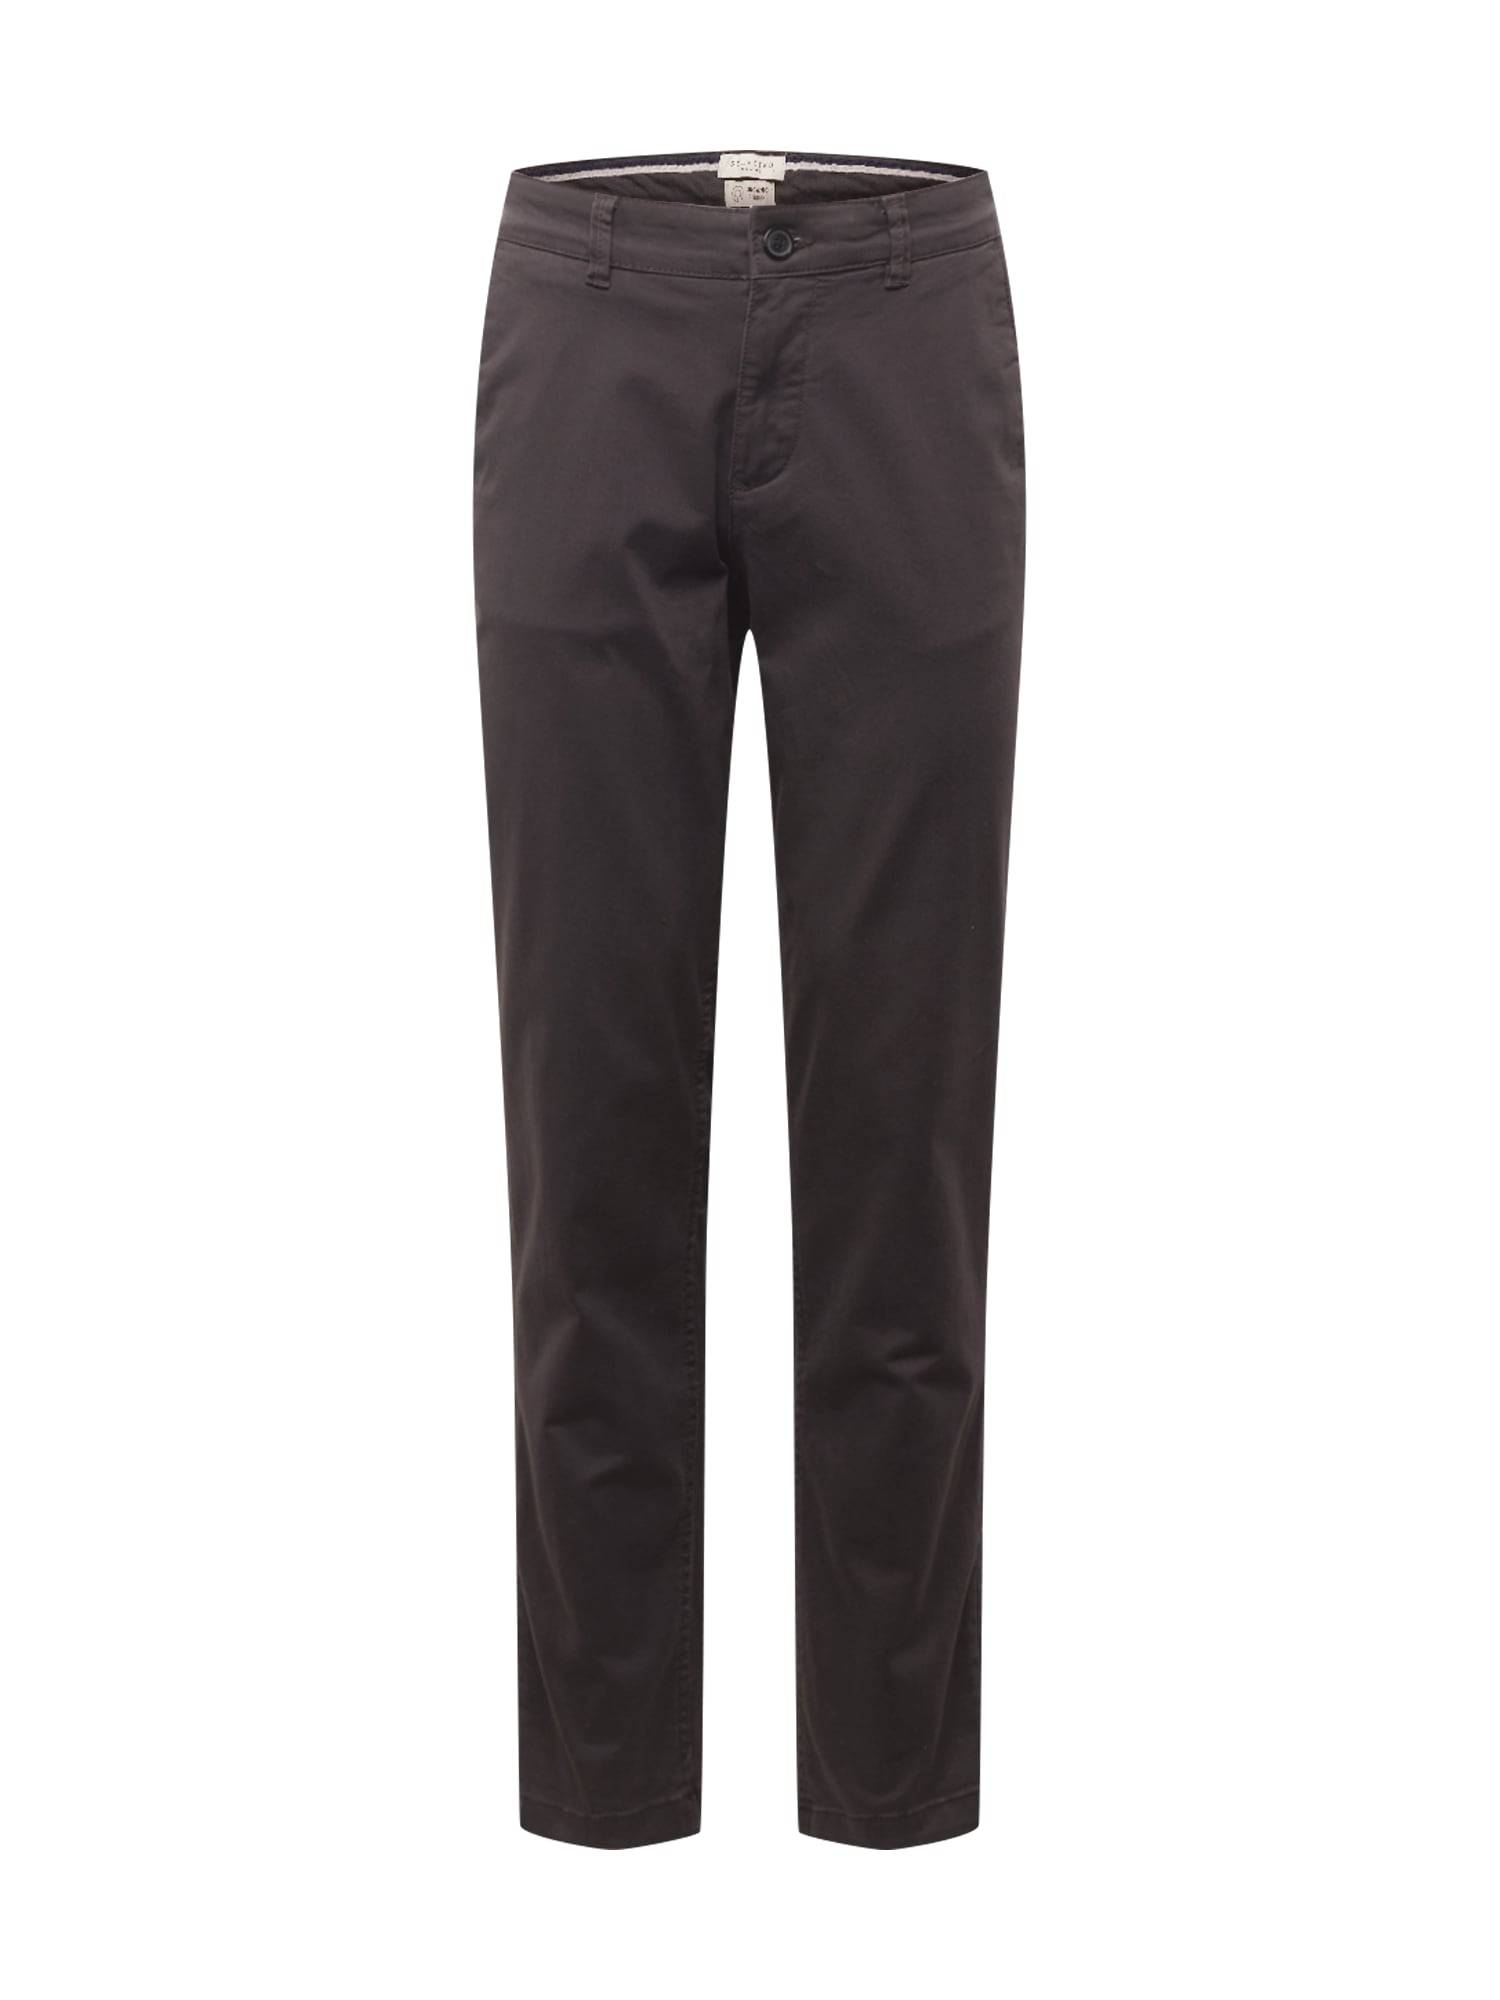 SELECTED HOMME Pantalon chino 'NEW PARIS'  - Gris - Taille: 32 - male